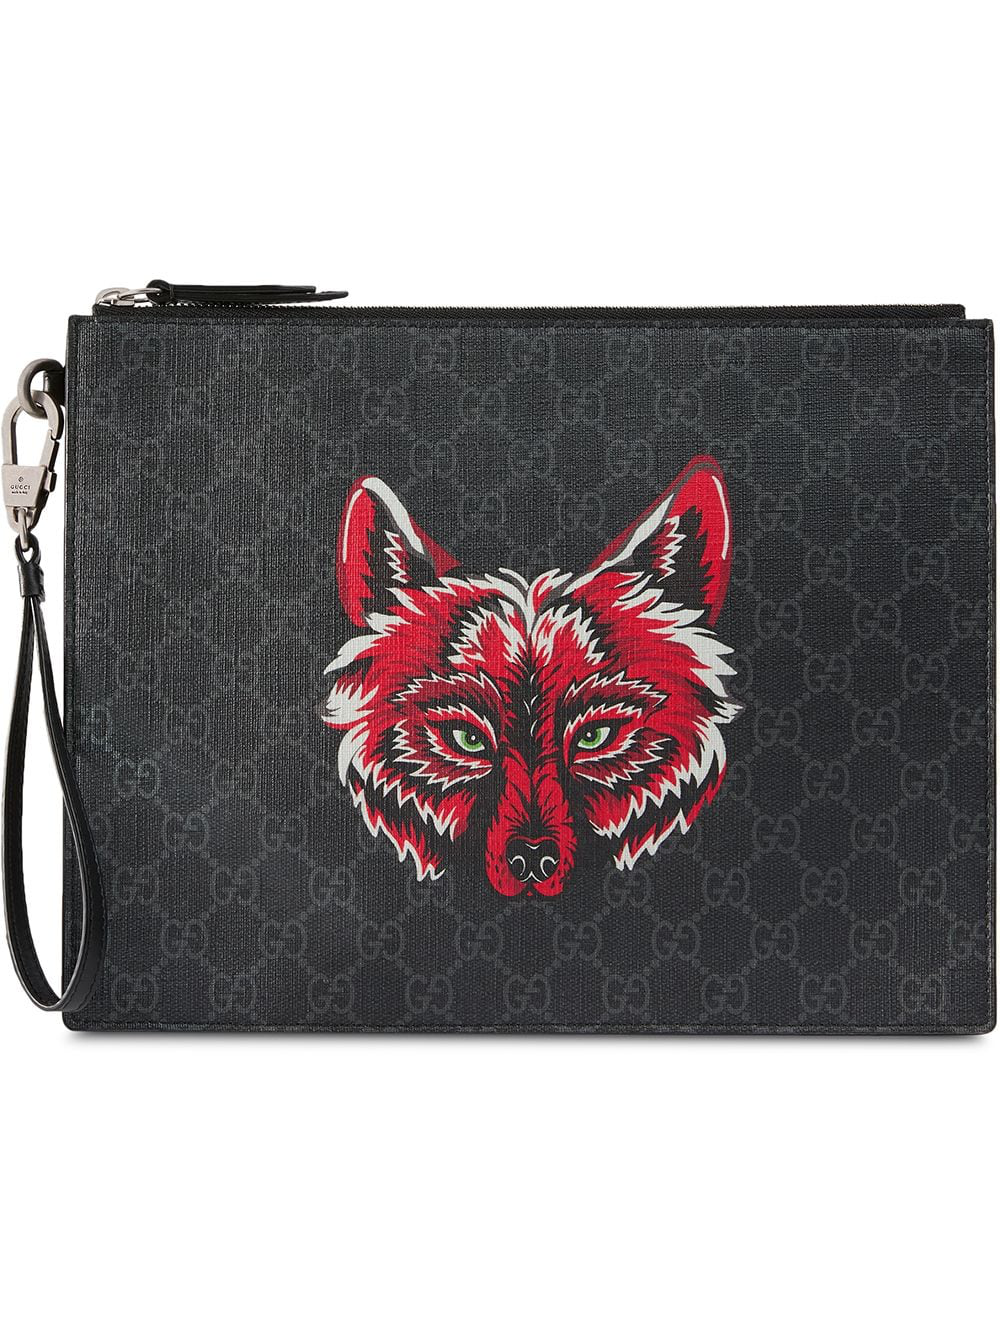 b1be33dc7d4 Gucci Gg Supreme Pouch With Wolf - Black